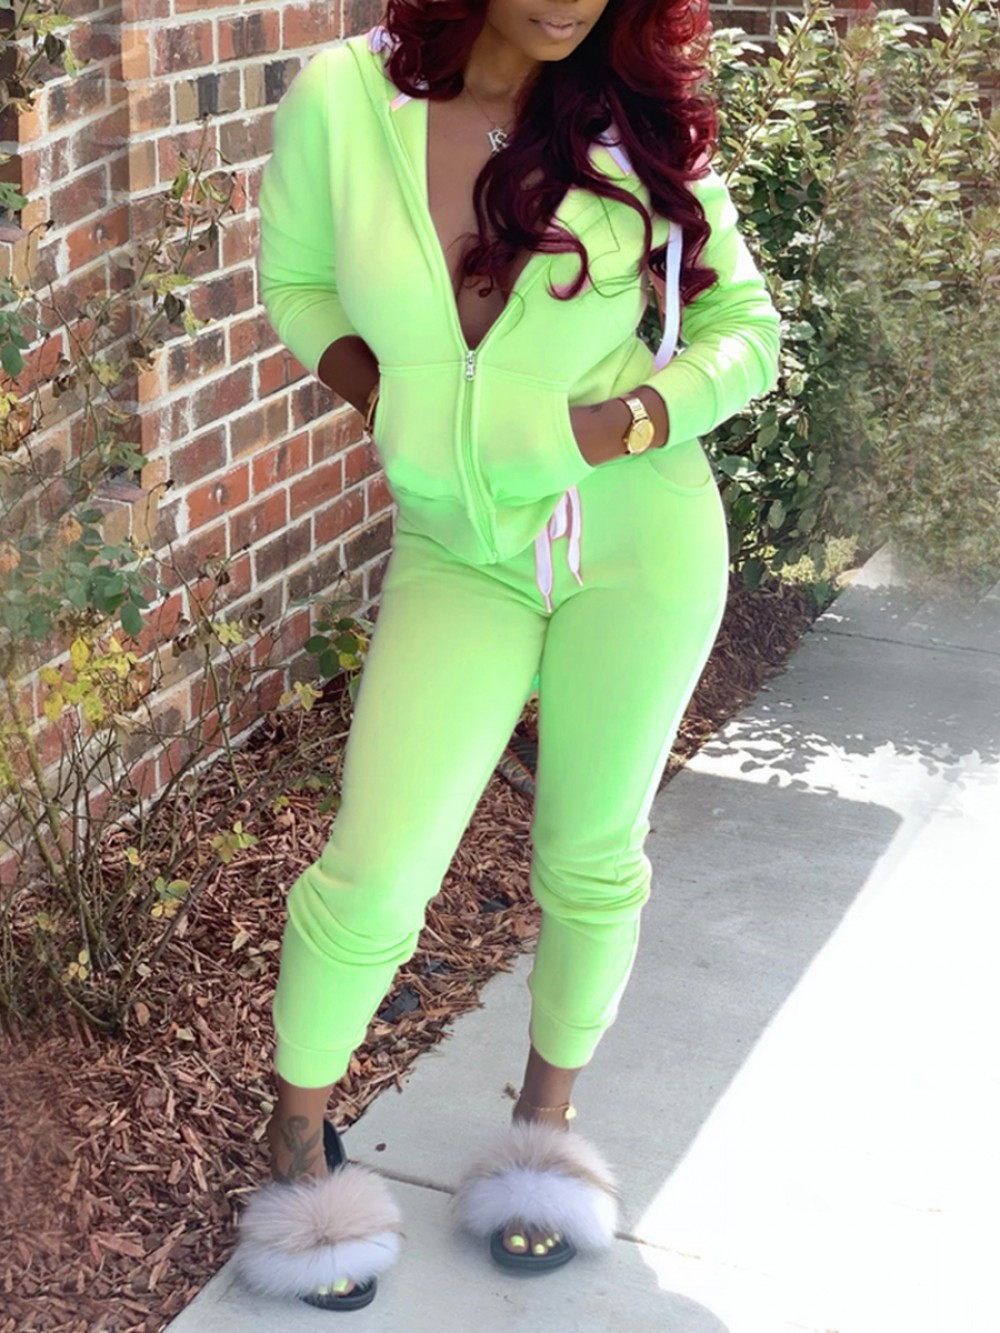 Green High Waist Drawstring Two Piece Outfit Women Outfit